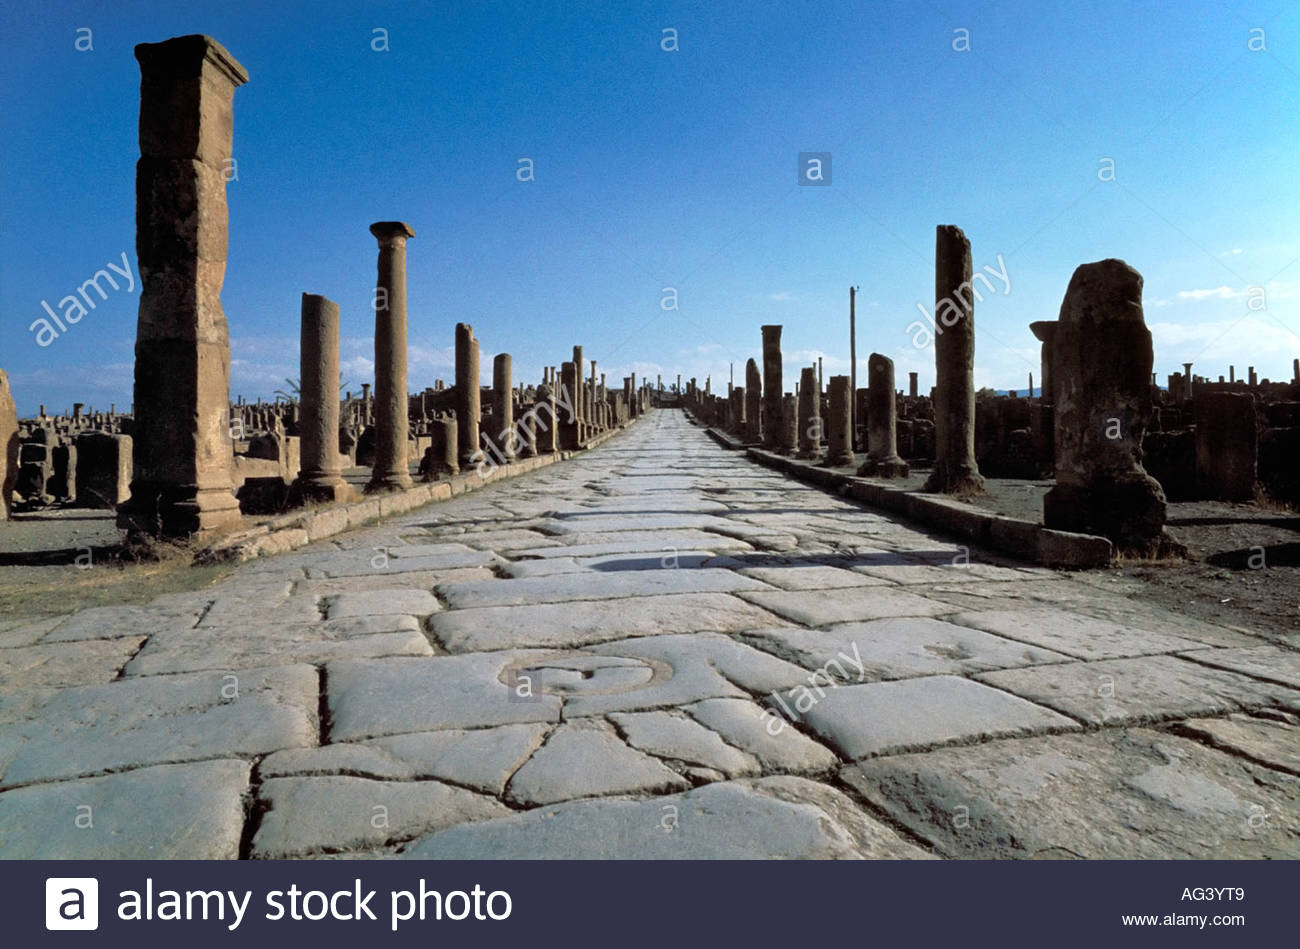 town planning of ancient romans Contents - return to elegantly laid out cities a plan for a small roman city when planning a brand new town where there had not been a city before, roman civil engineers used a plan similar.